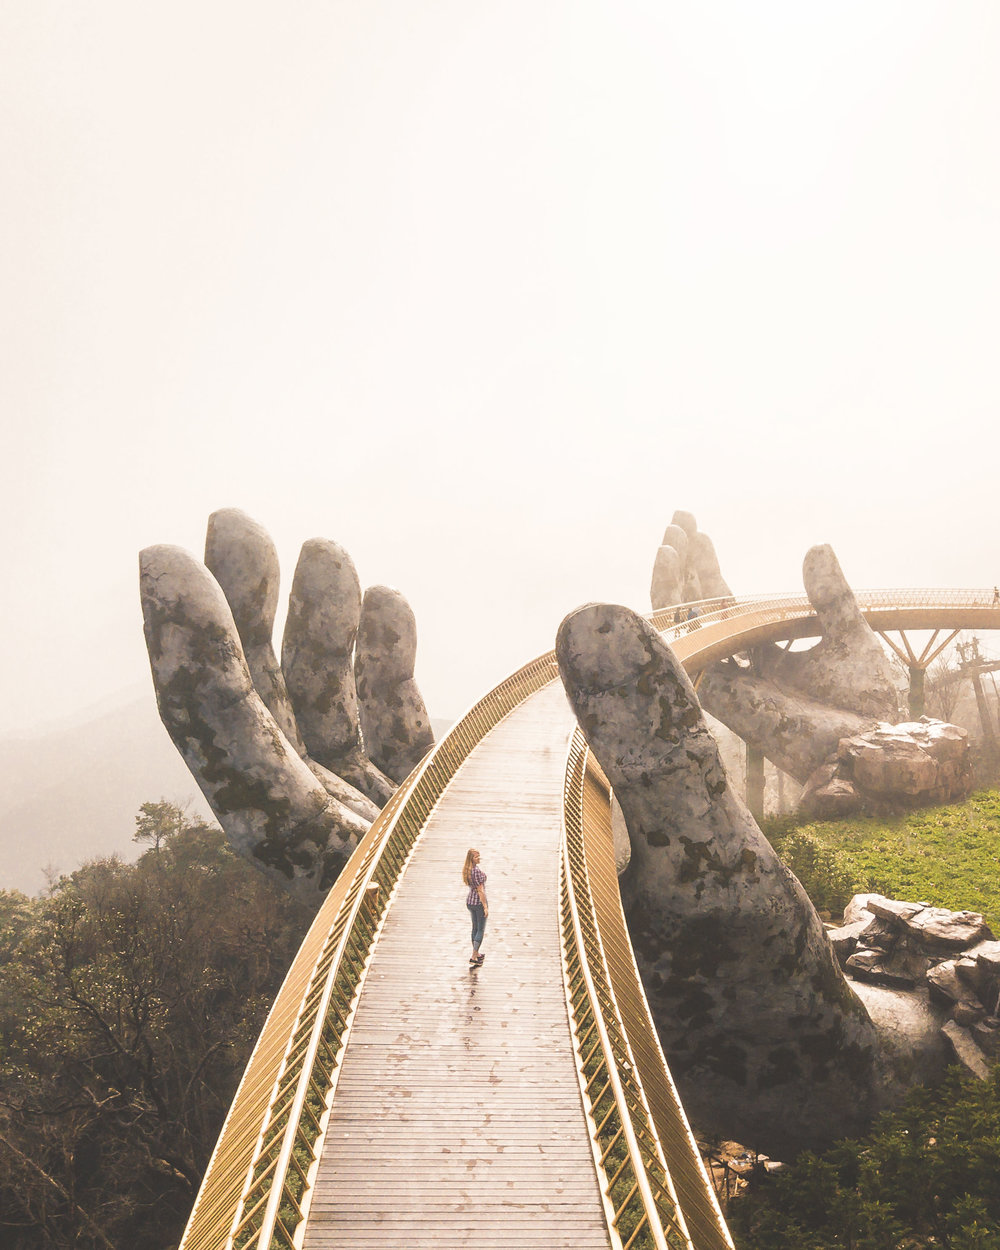 Golden Hand Bridge in the nearby Ba Na Hills